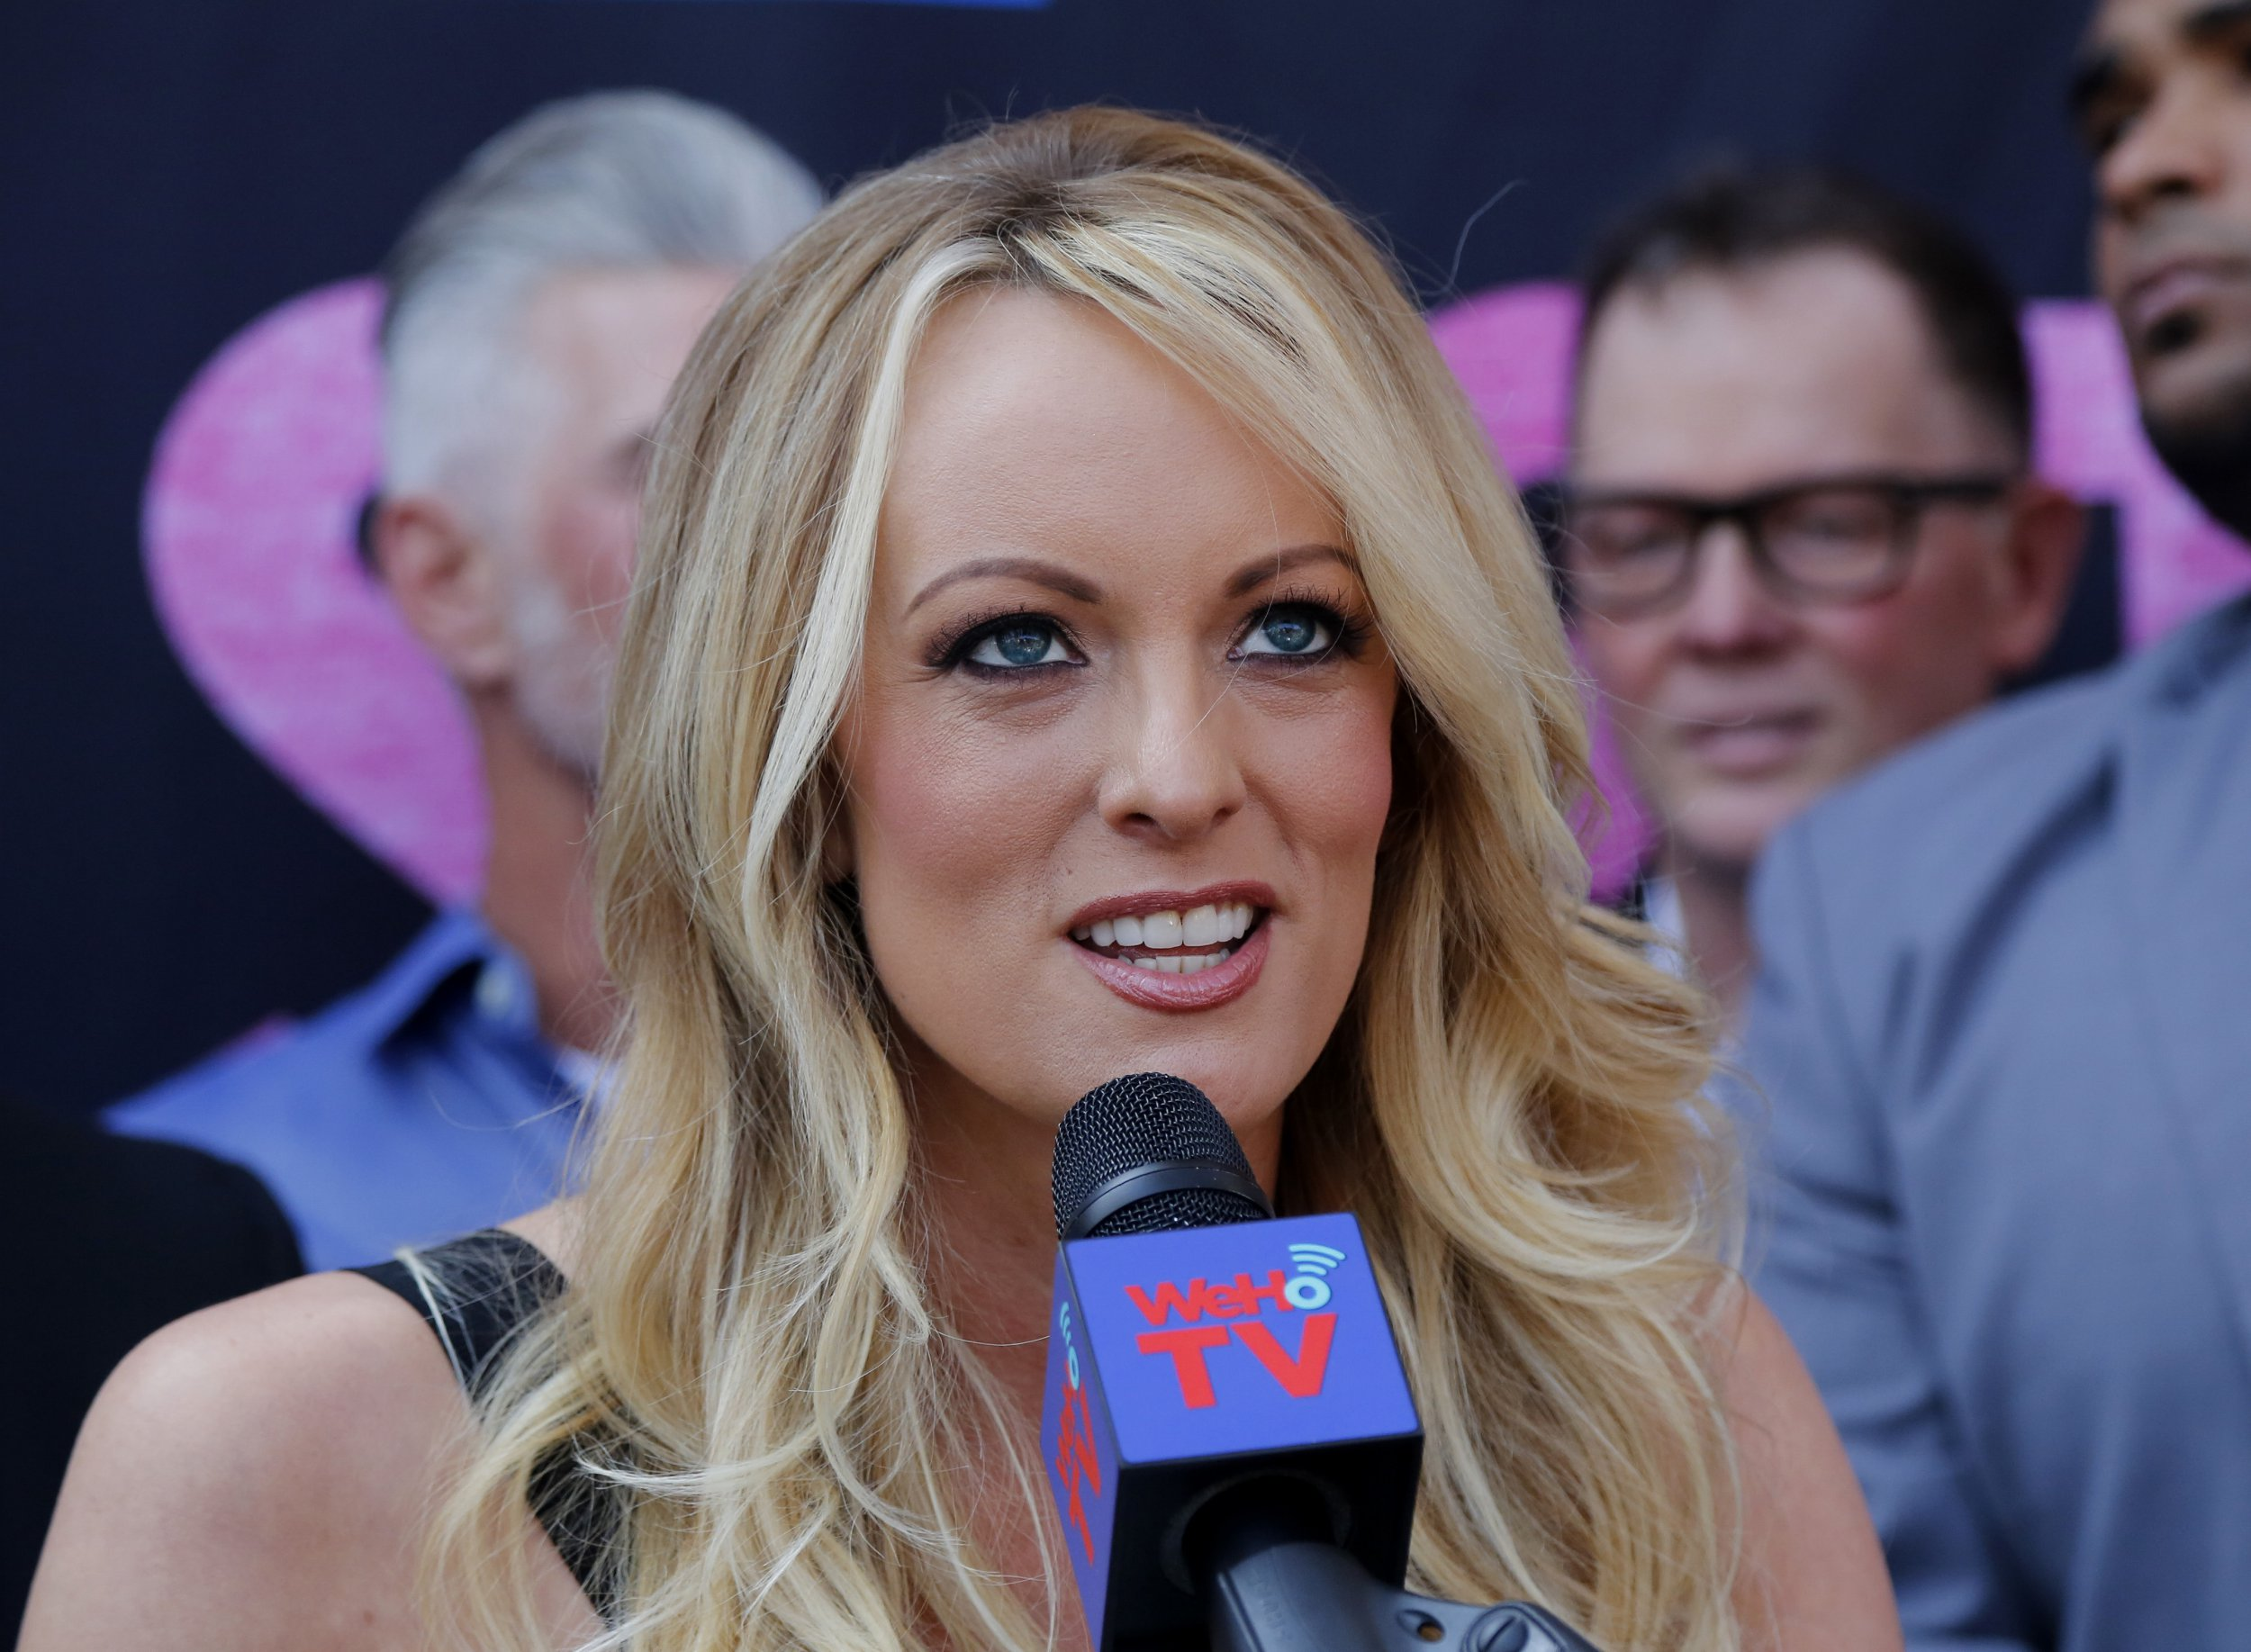 FILE - In this May 23, 2018 file photo, porn actress Stormy Daniels speaks during a ceremony for her receiving a City Proclamation and Key to the City in West Hollywood, Calif. Daniels was arrested at an Ohio strip club and is accused of letting patrons touch her in violation of a state law, her attorney said early Thursday, July 12. While Daniels was performing at Sirens, a strip club in Columbus, some patrons touched her in a ???non-sexual??? way, her lawyer, Michael Avenatti, told The Associated Press. An Ohio law known as the Community Defense Act prohibits anyone who isn???t a family member to touch a nude or semi-nude dancer. (AP Photo/Ringo H.W. Chiu, File)